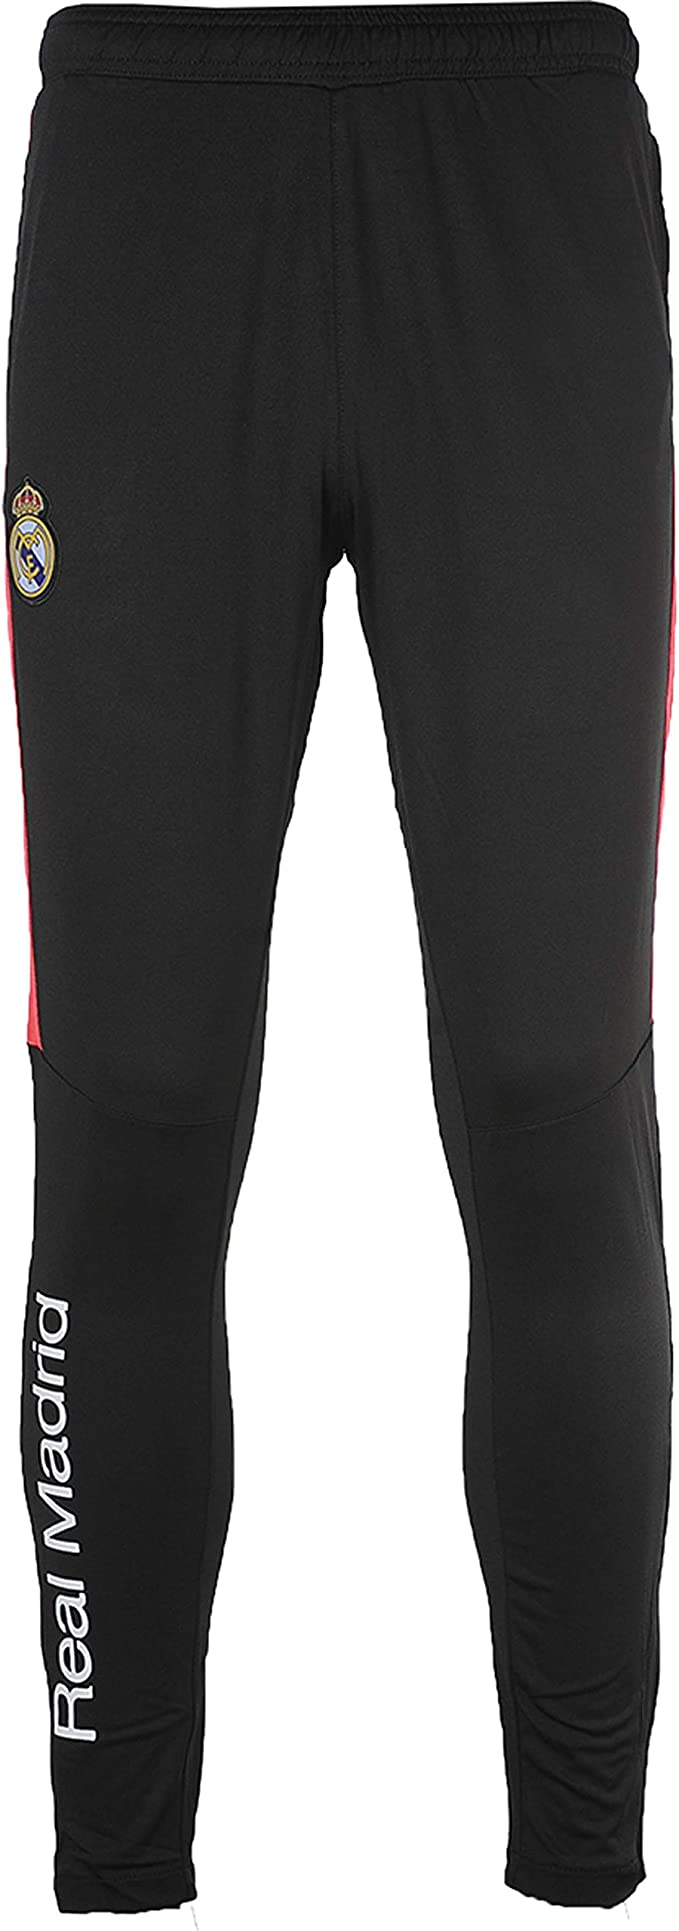 Real Madrid Pantalon Training fit Collection Officielle Taille Adulte